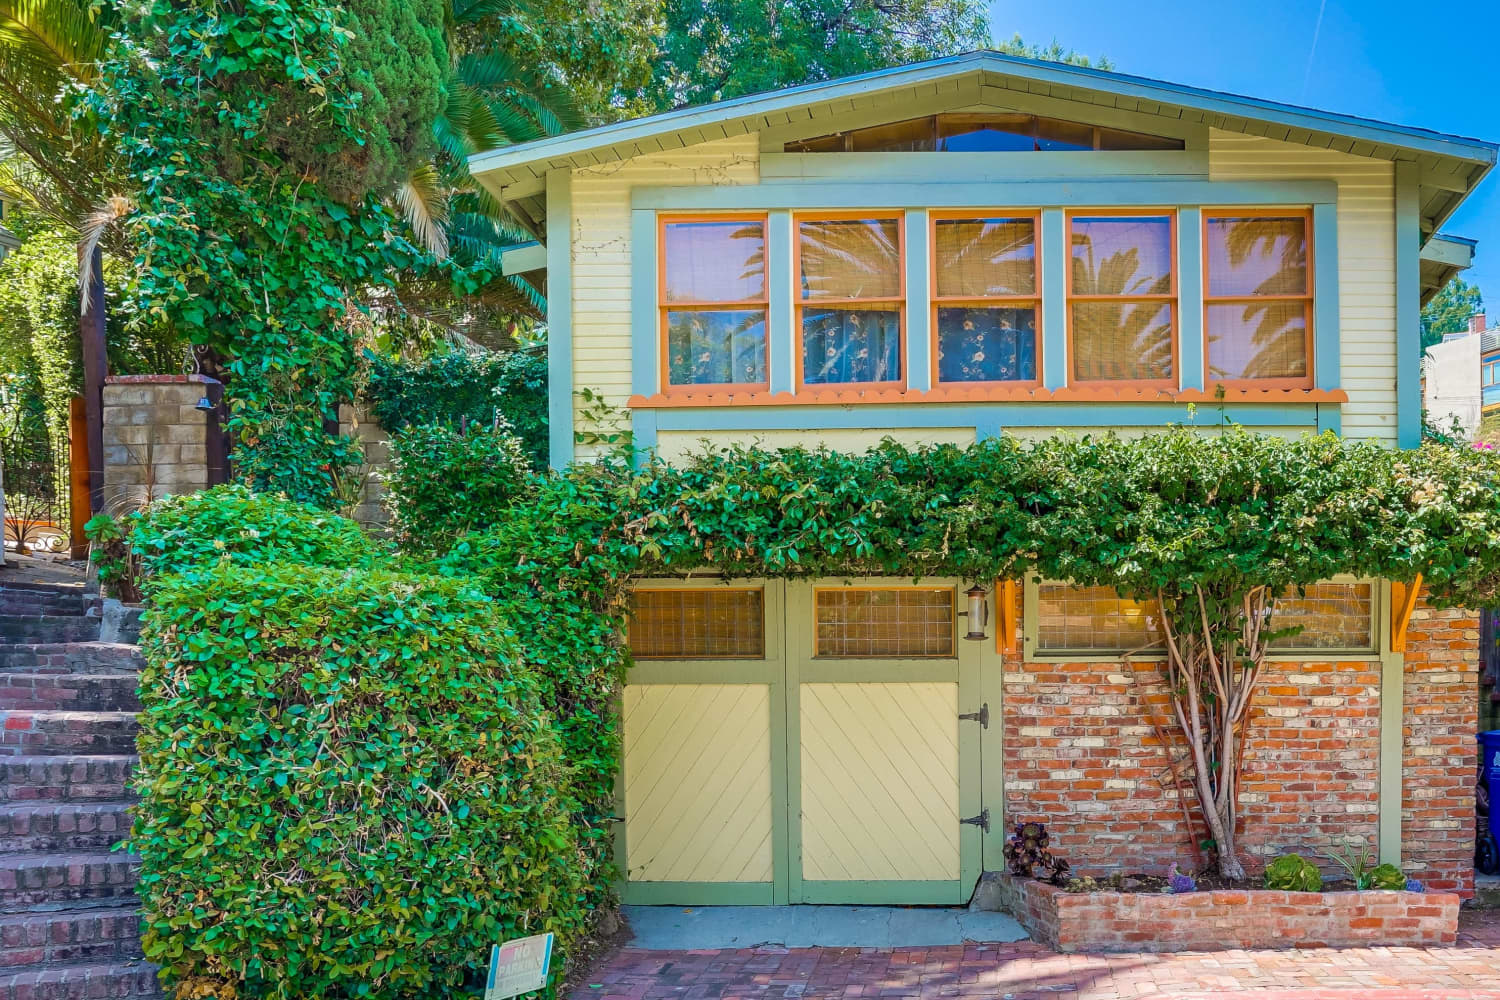 Look Inside: This $975K L.A. Home Is Packed to the Brim with Character